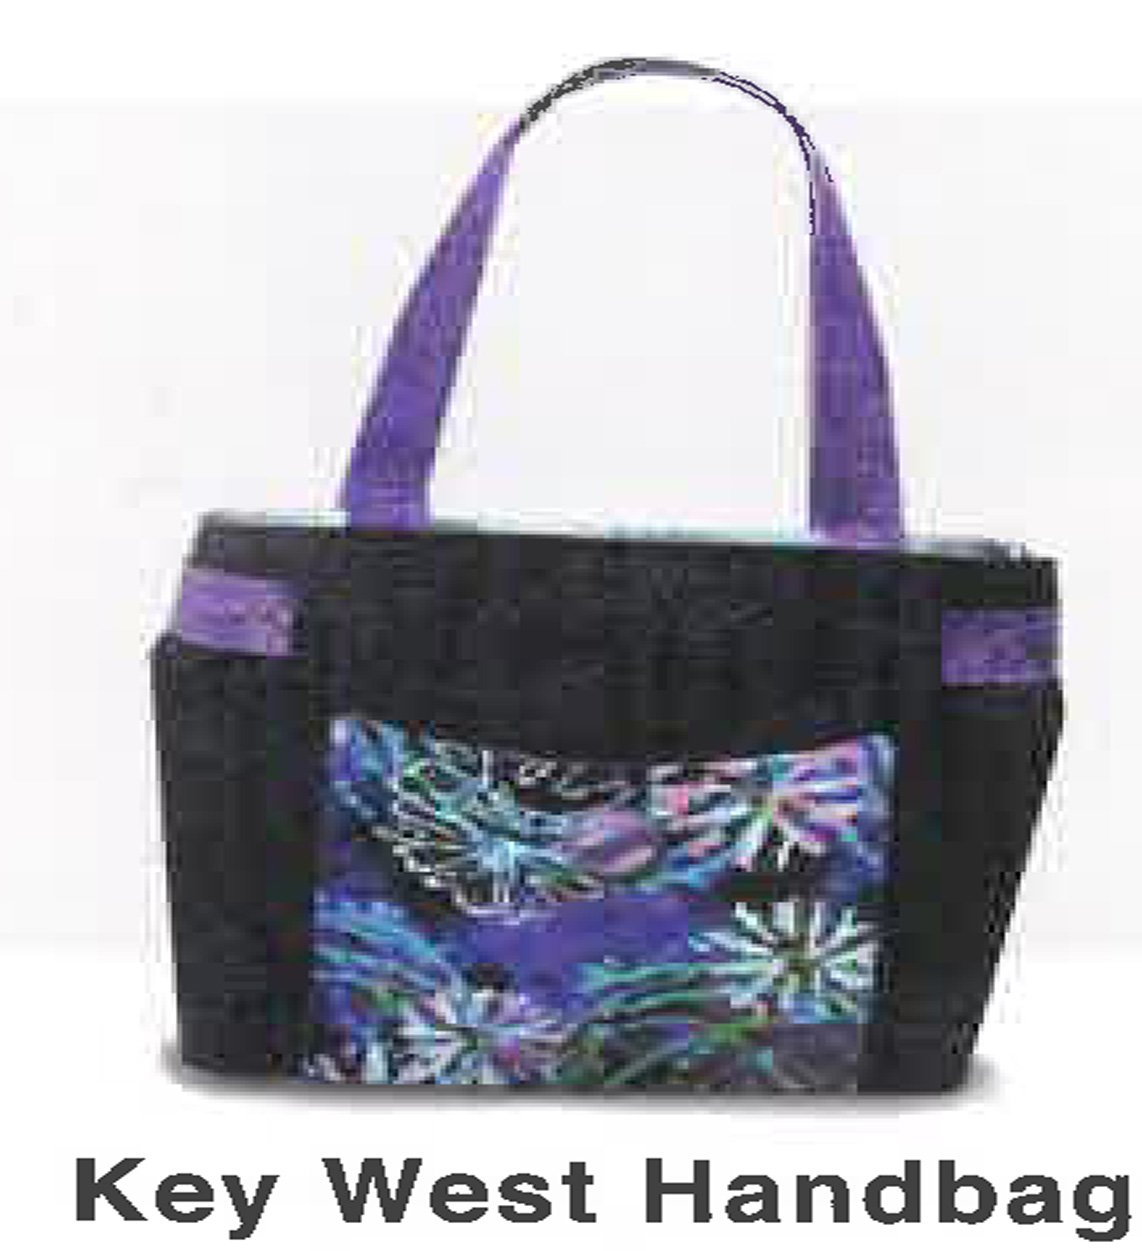 Key West Handbag Kit